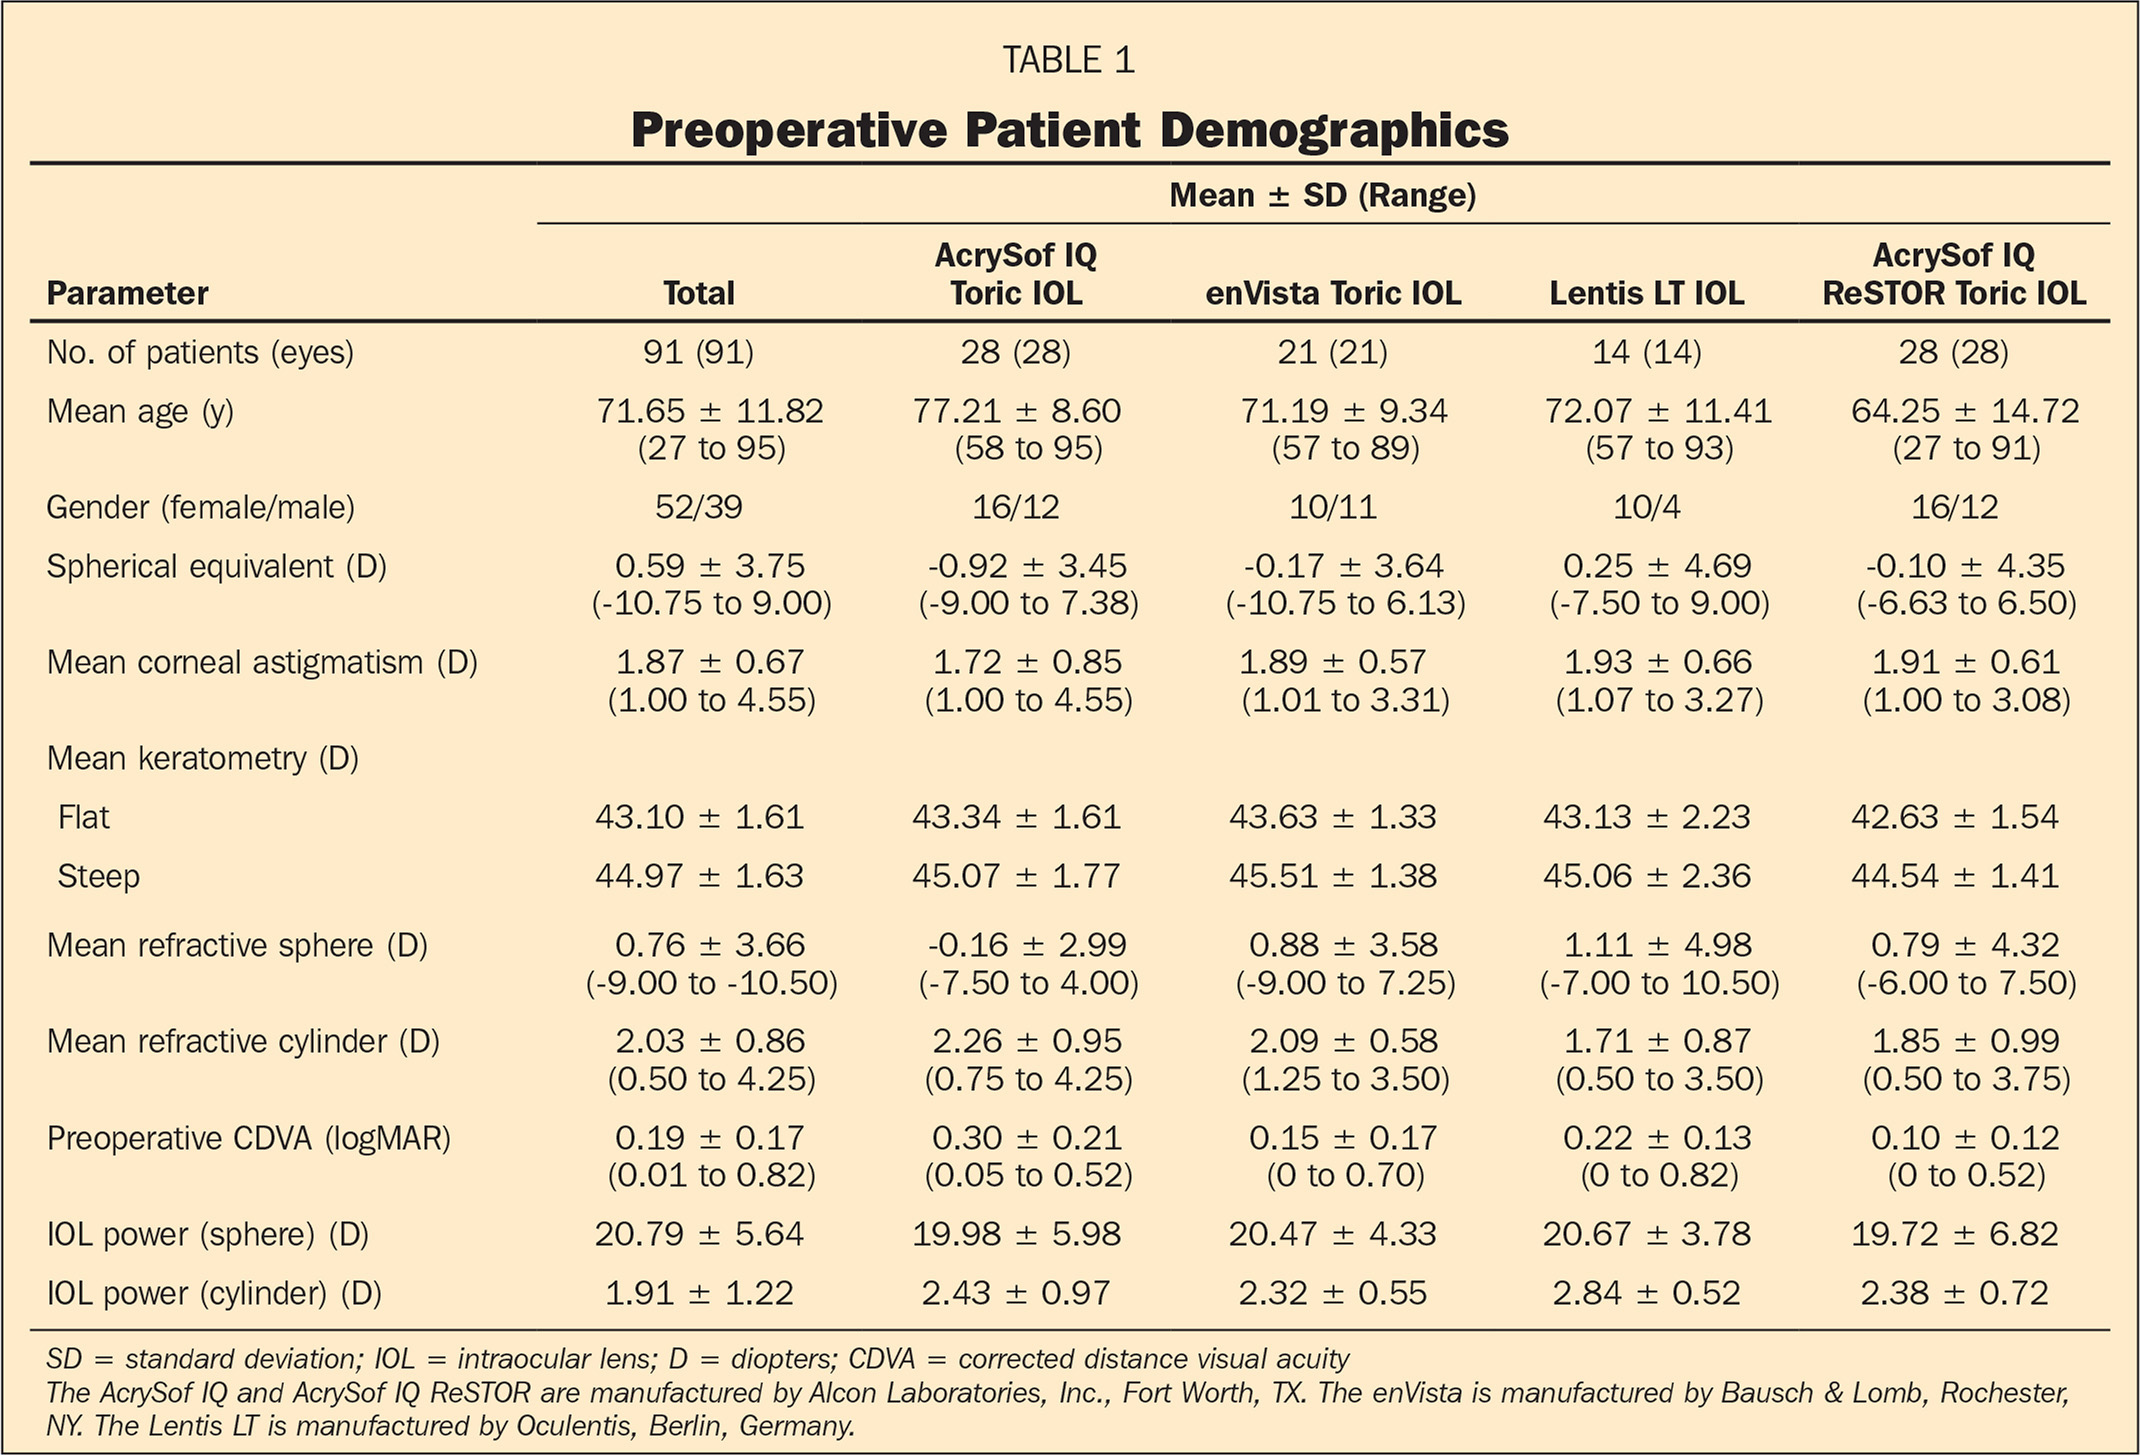 Preoperative Patient Demographics